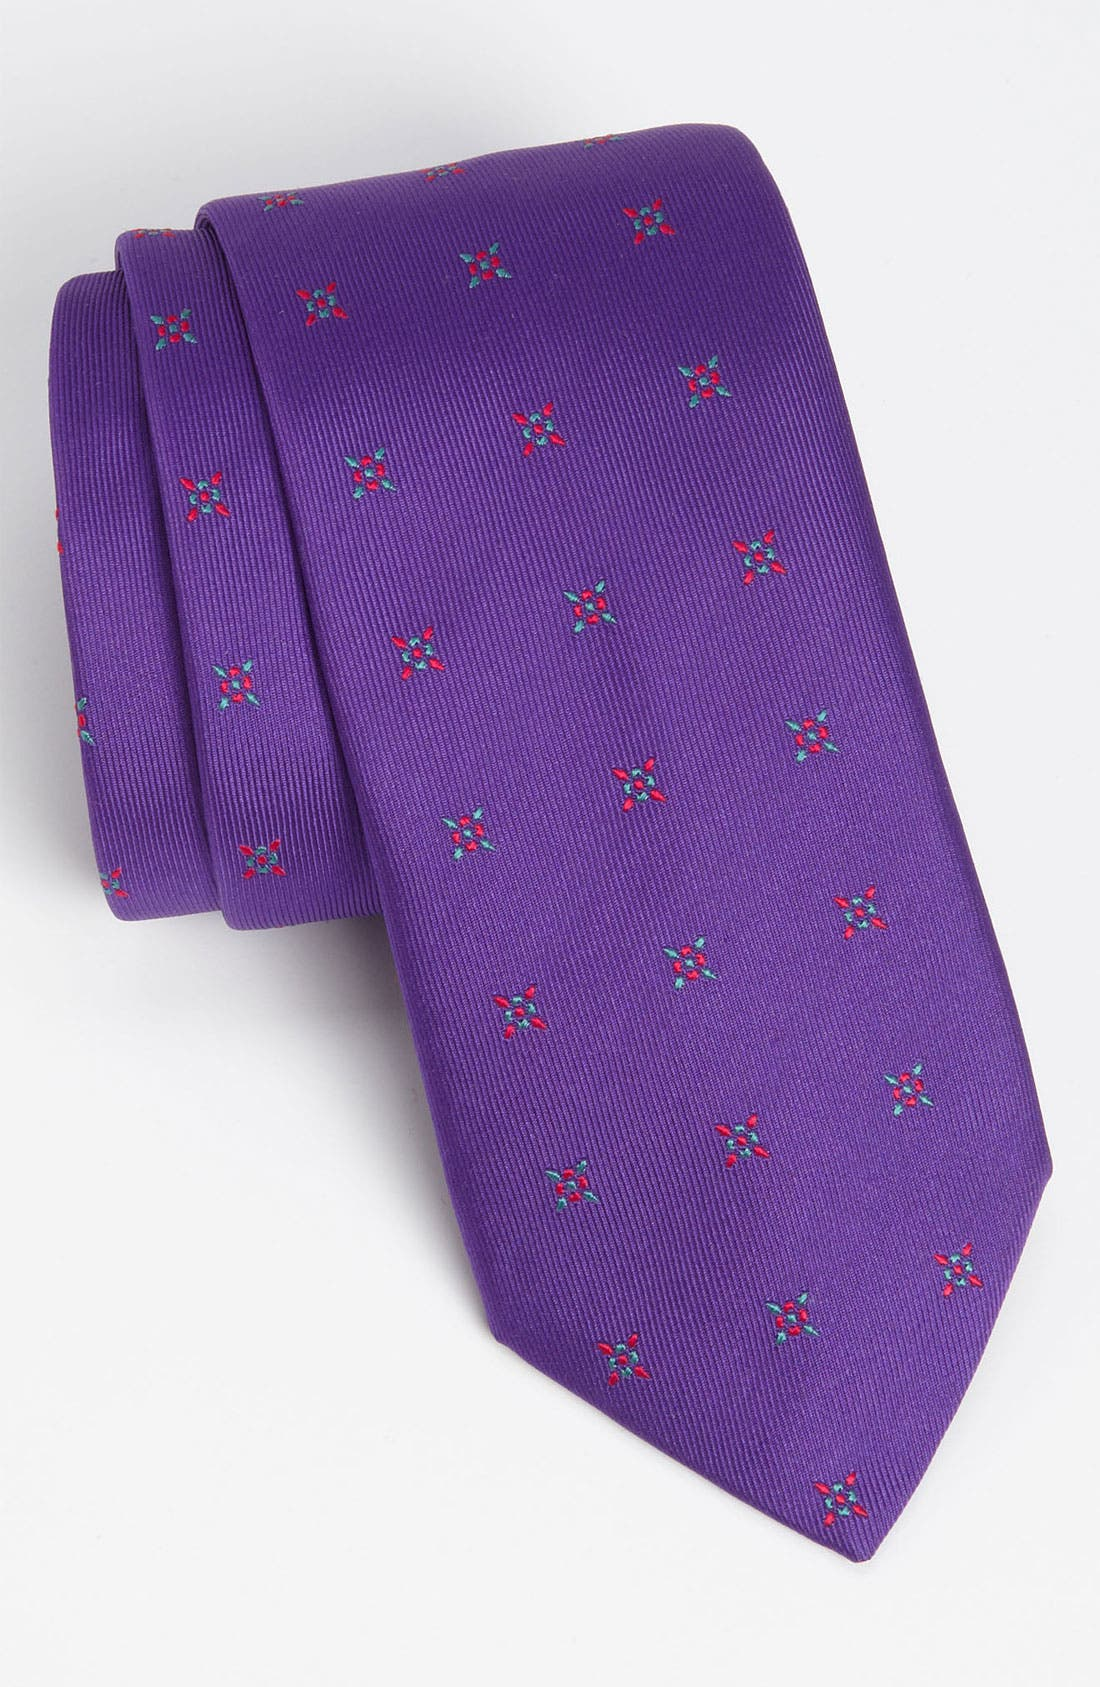 Main Image - Thomas Pink 'Castle Flower' Woven Silk Tie